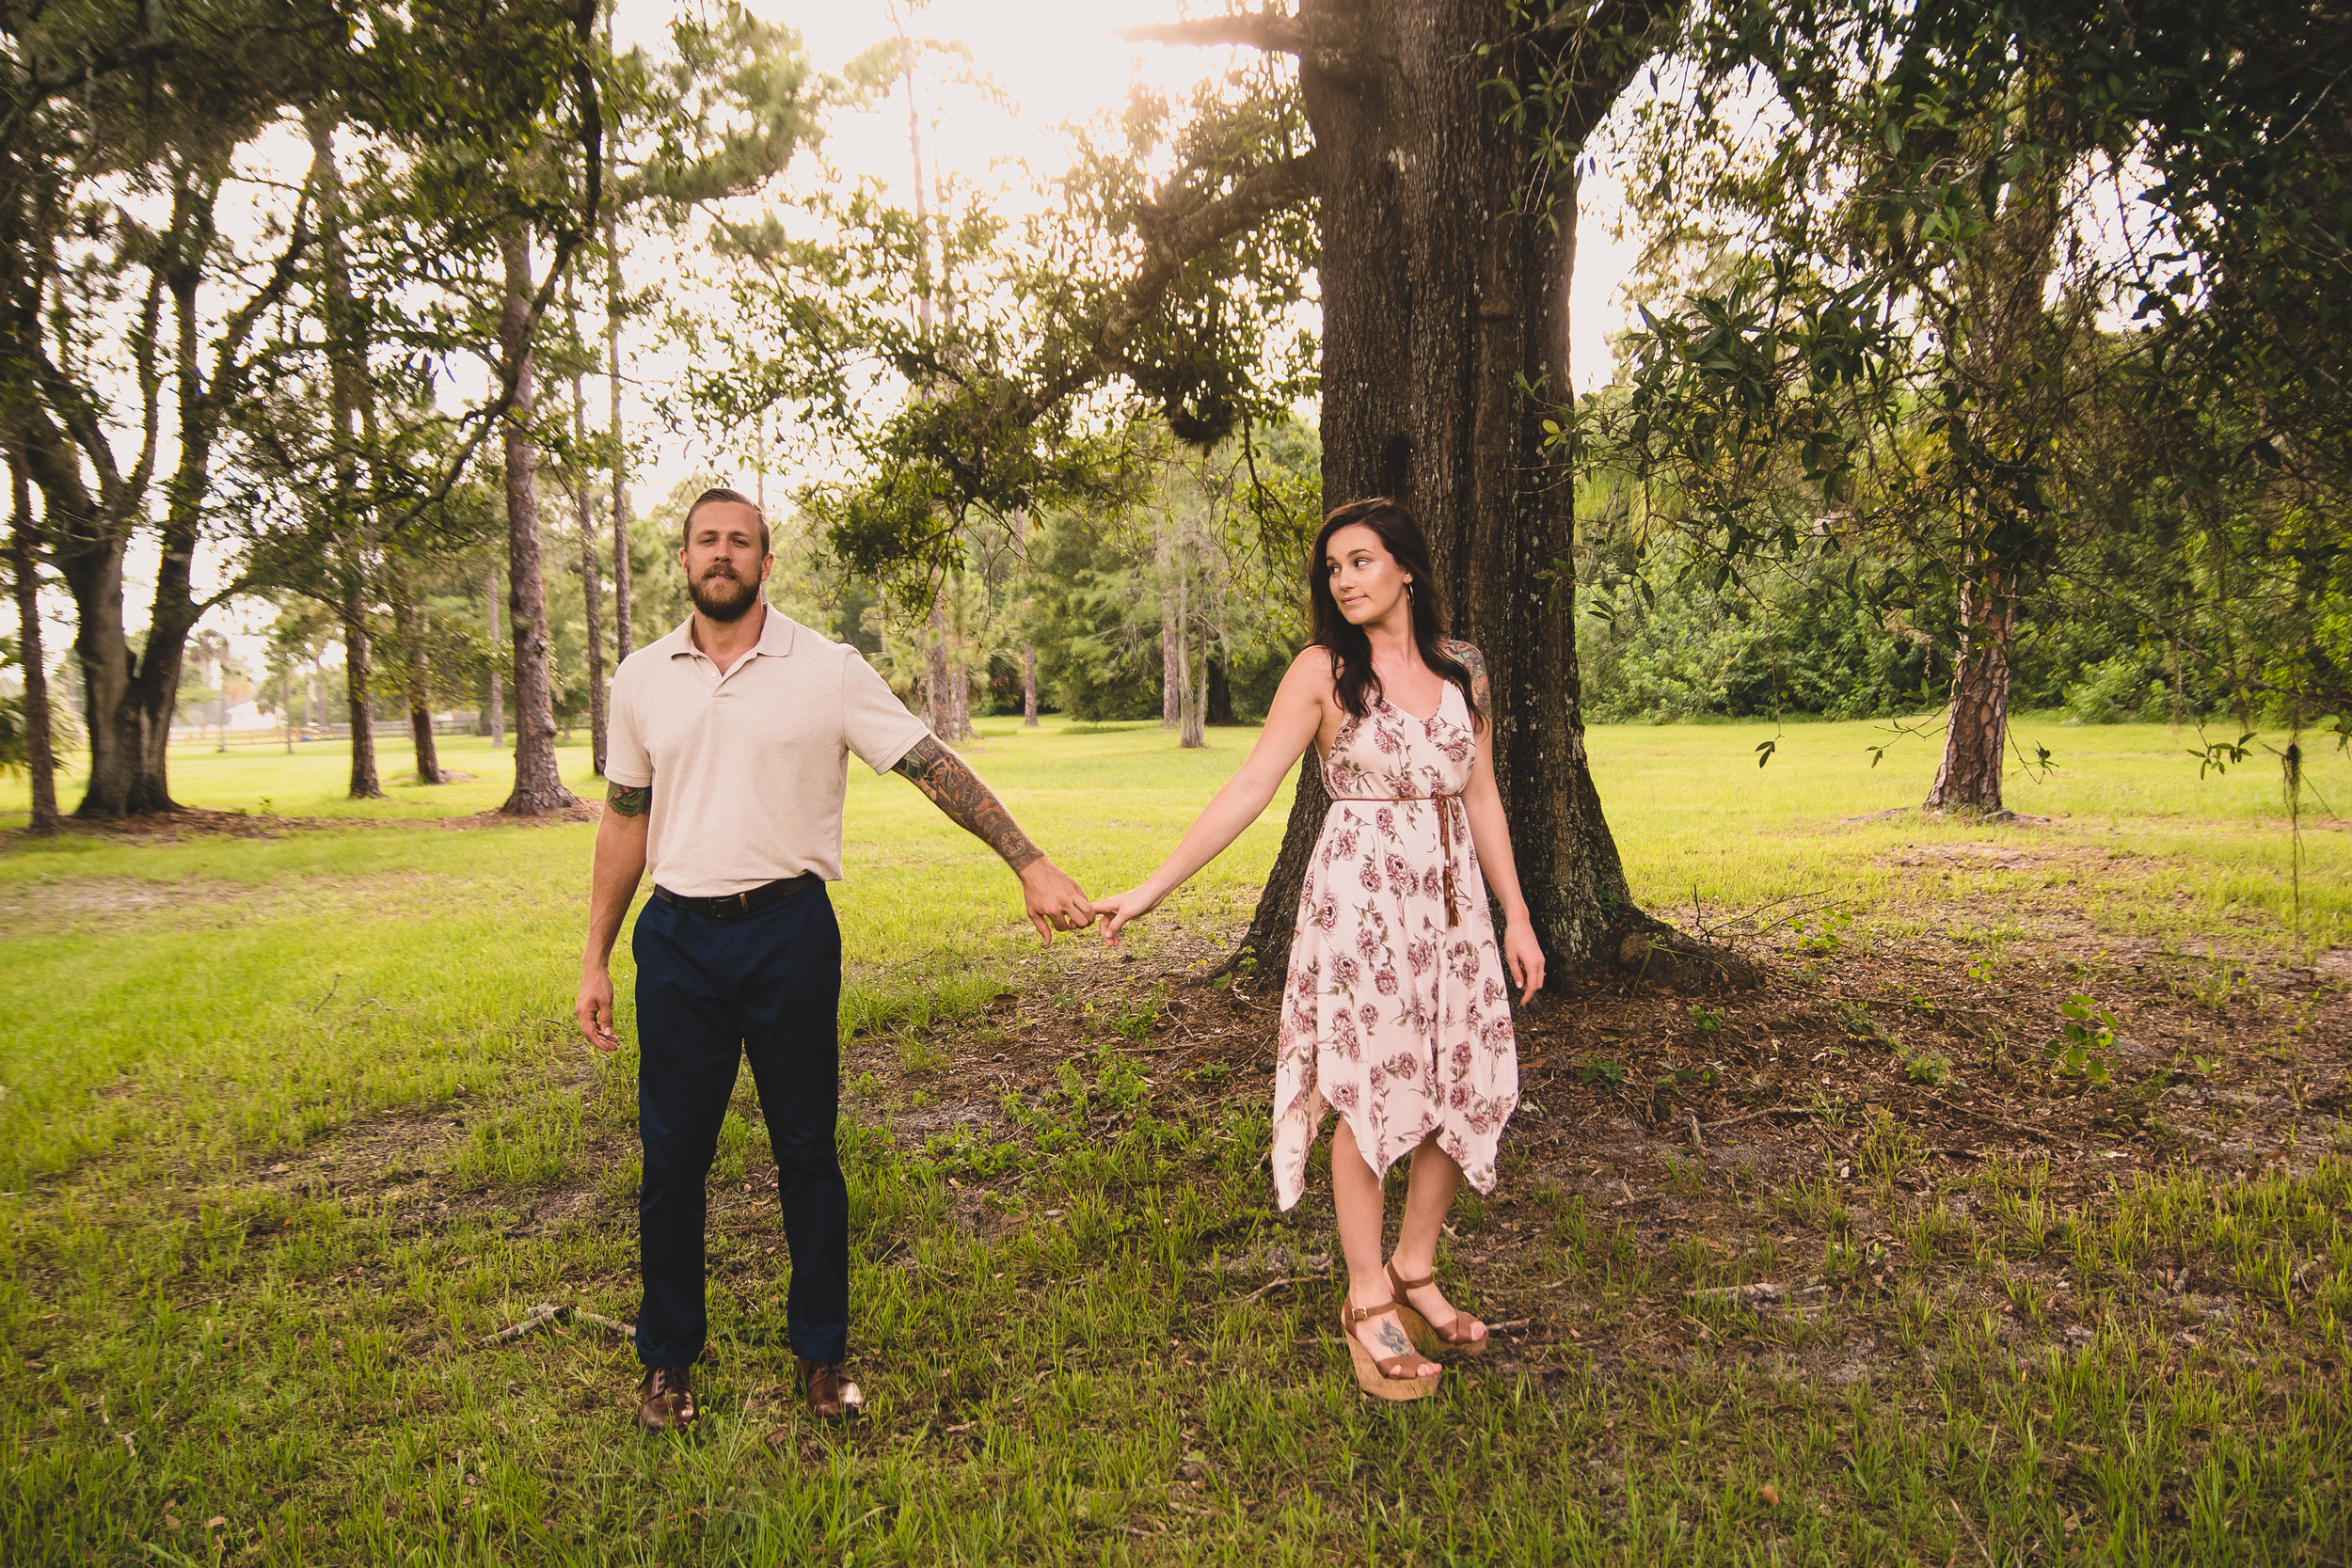 West Palm Beach Wedding Photographers at Southern Palm Bed & Breakfast in Loxahatchee, FL